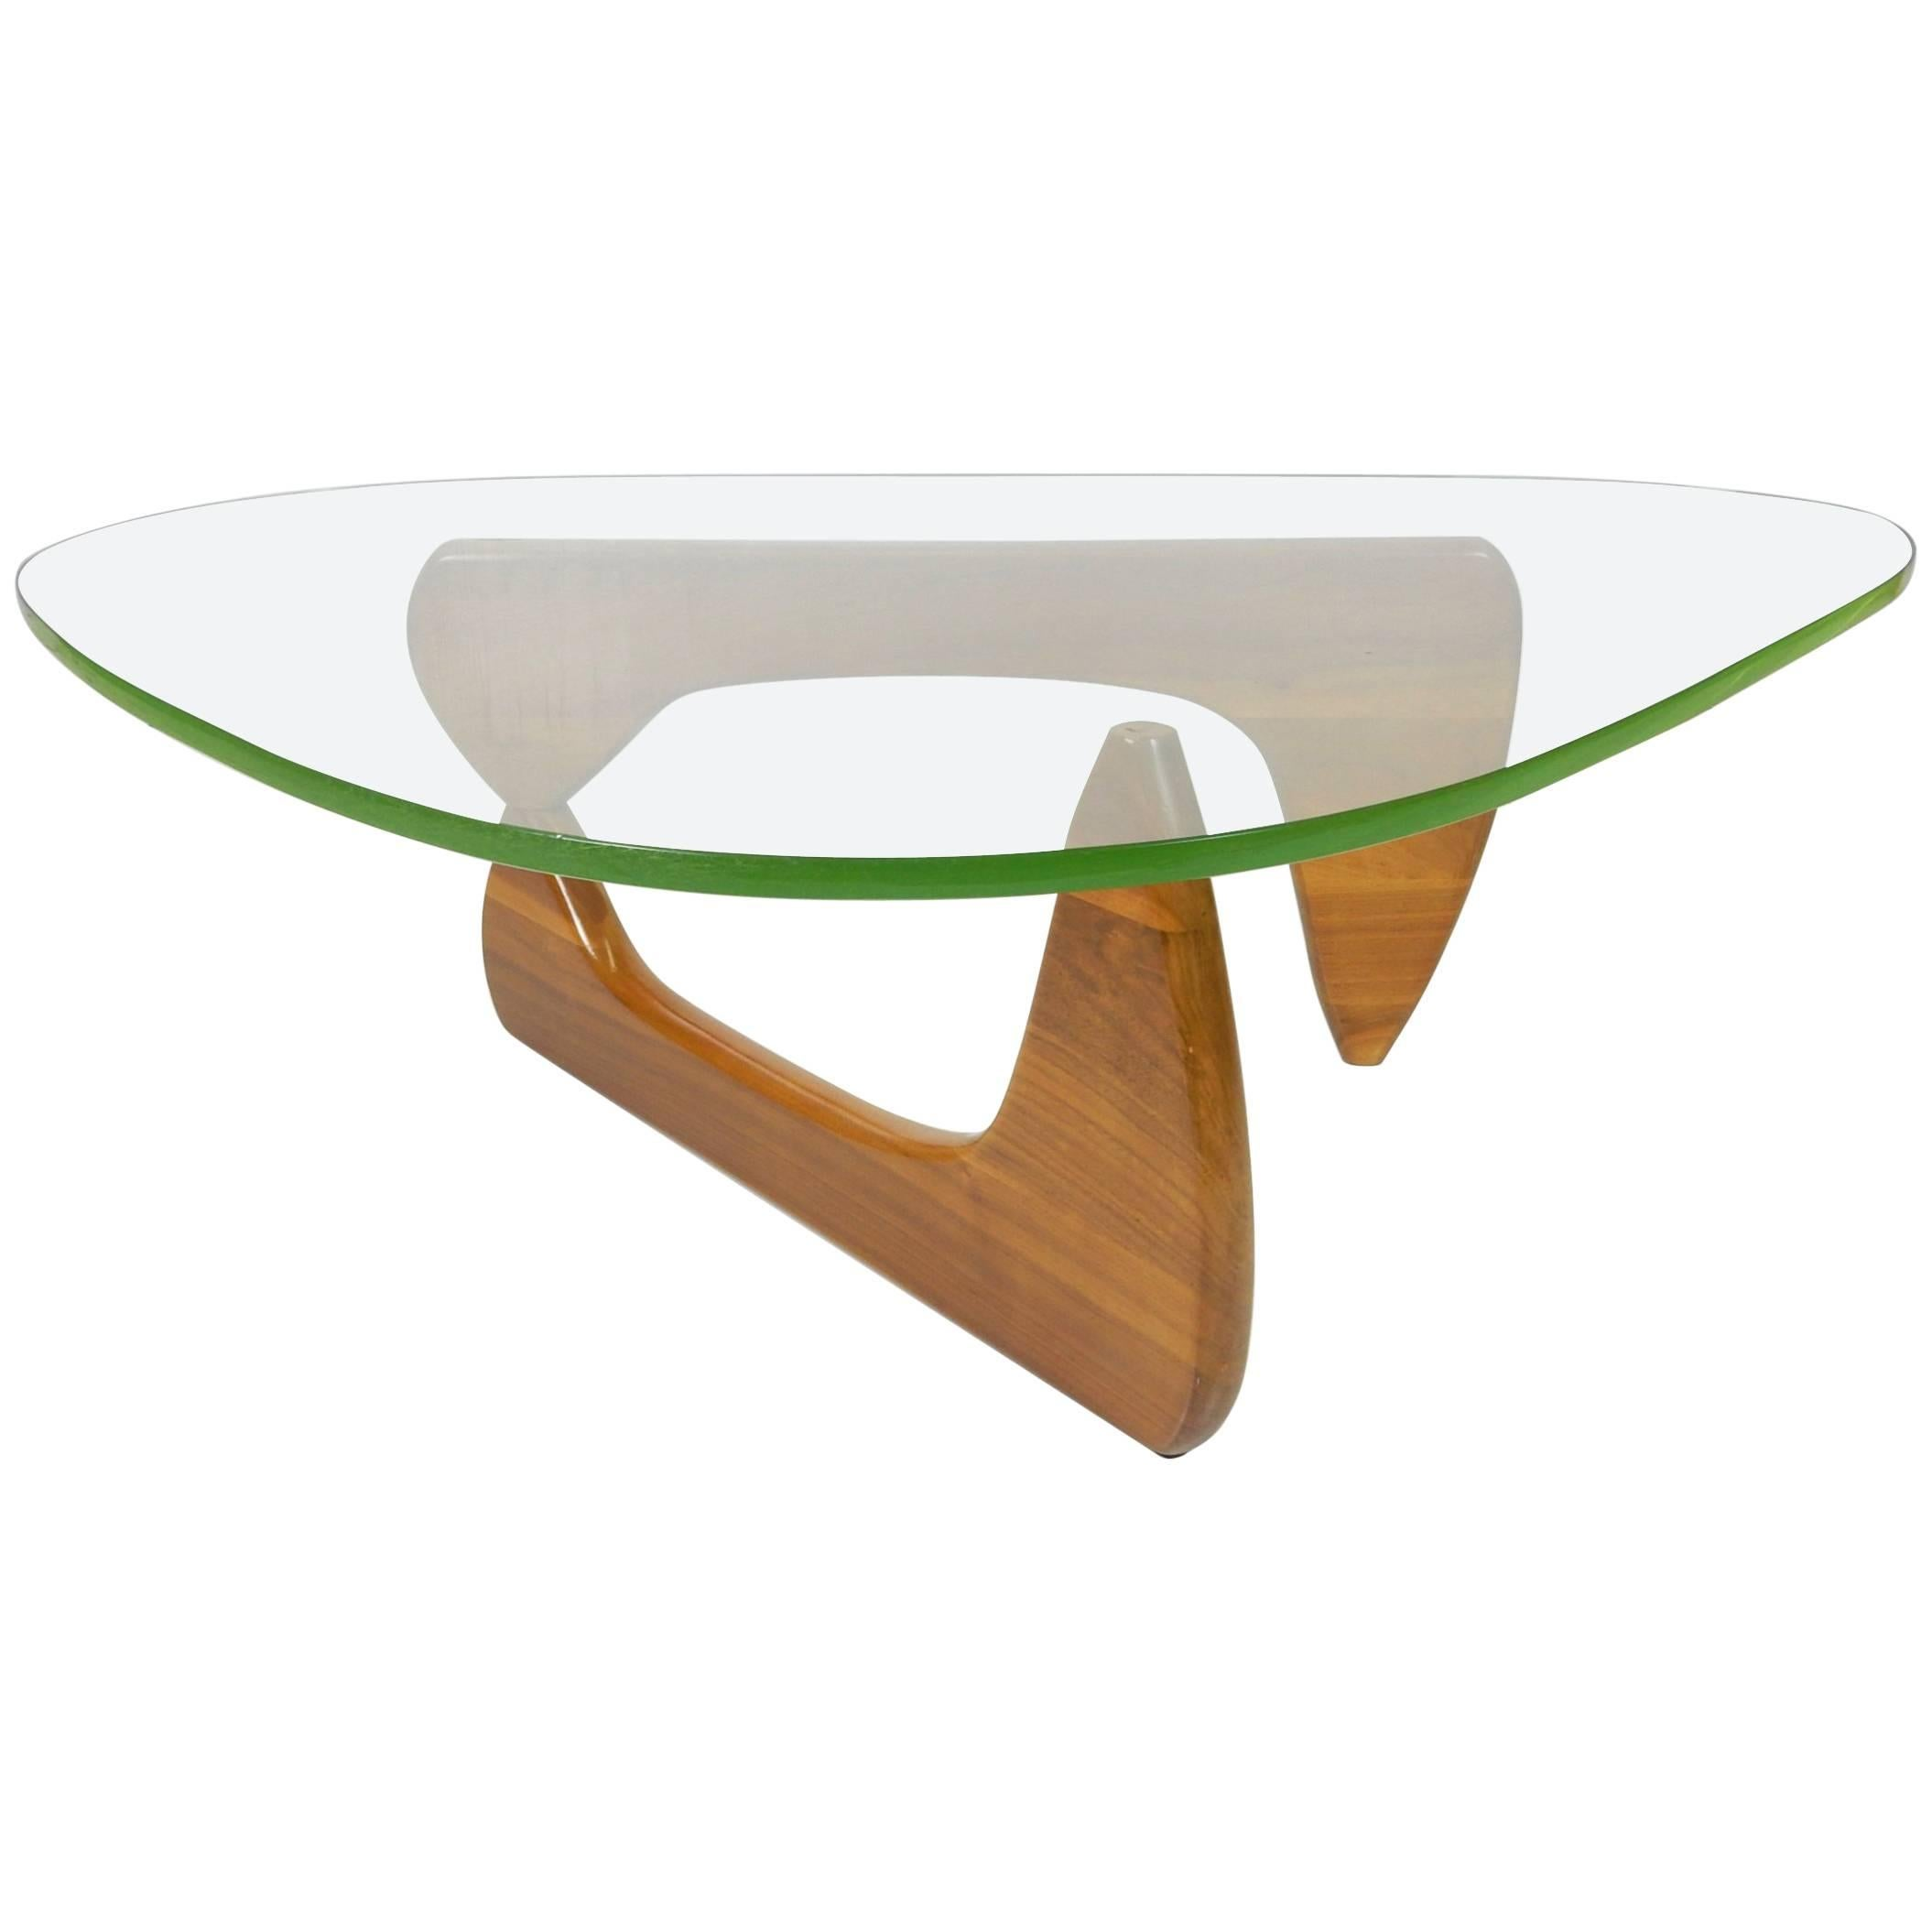 Isamu Noguchi Tables - 26 For Sale at 1stdibs